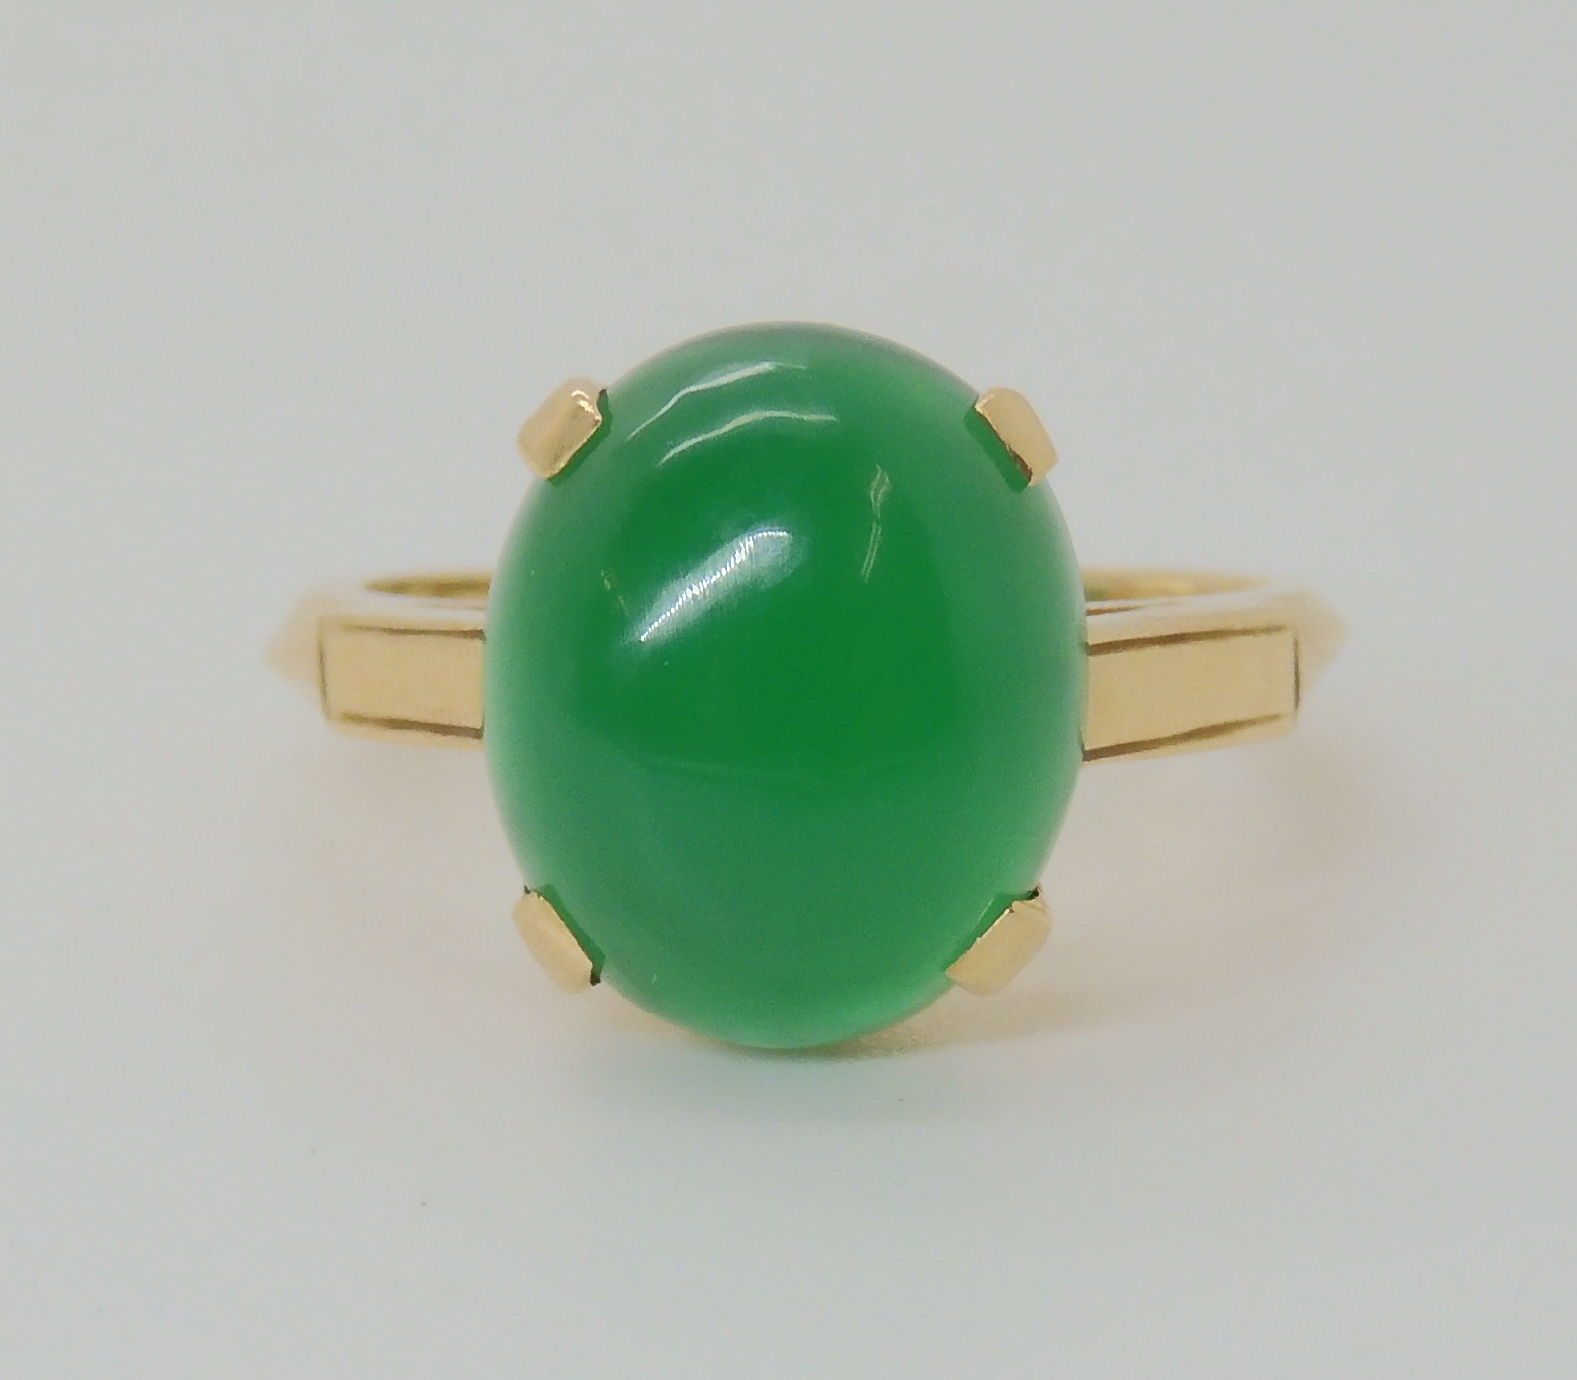 A 14K GREEN HARDSTONE SET RING Finger size M, weight 3.6gms Condition Report: Available upon